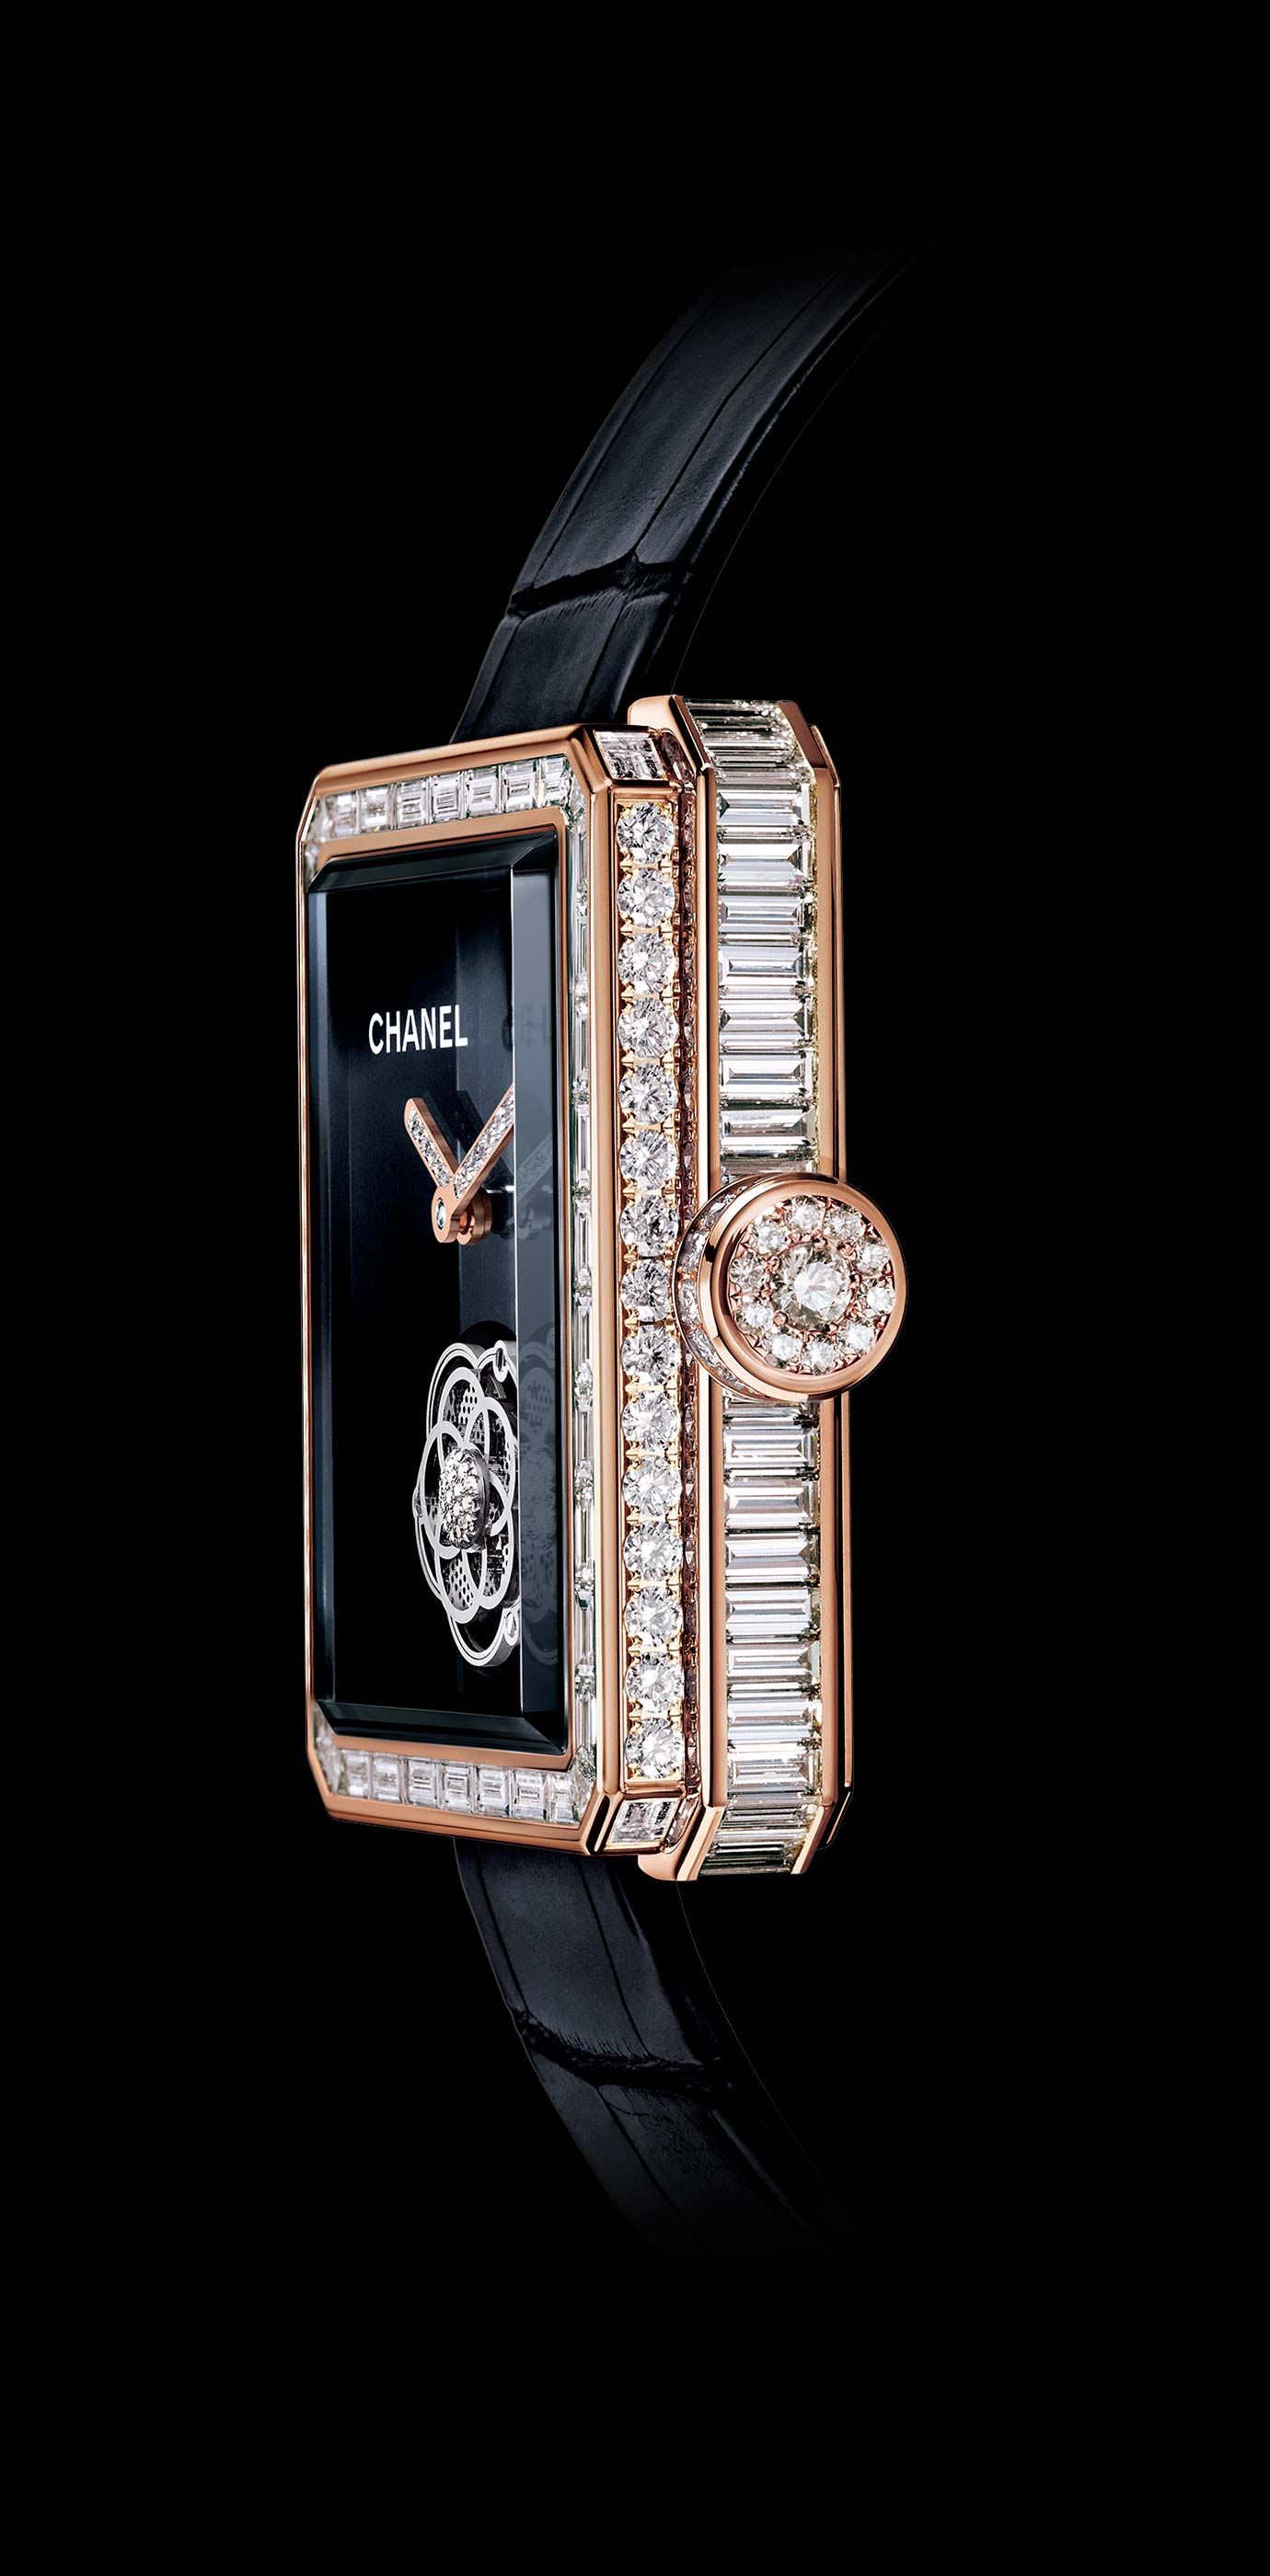 Première Flying Tourbillon watch 18K BEIGE GOLD, case, bezel and crown set with baguette- and brilliant-cut diamonds. Side view. - Enlarged view